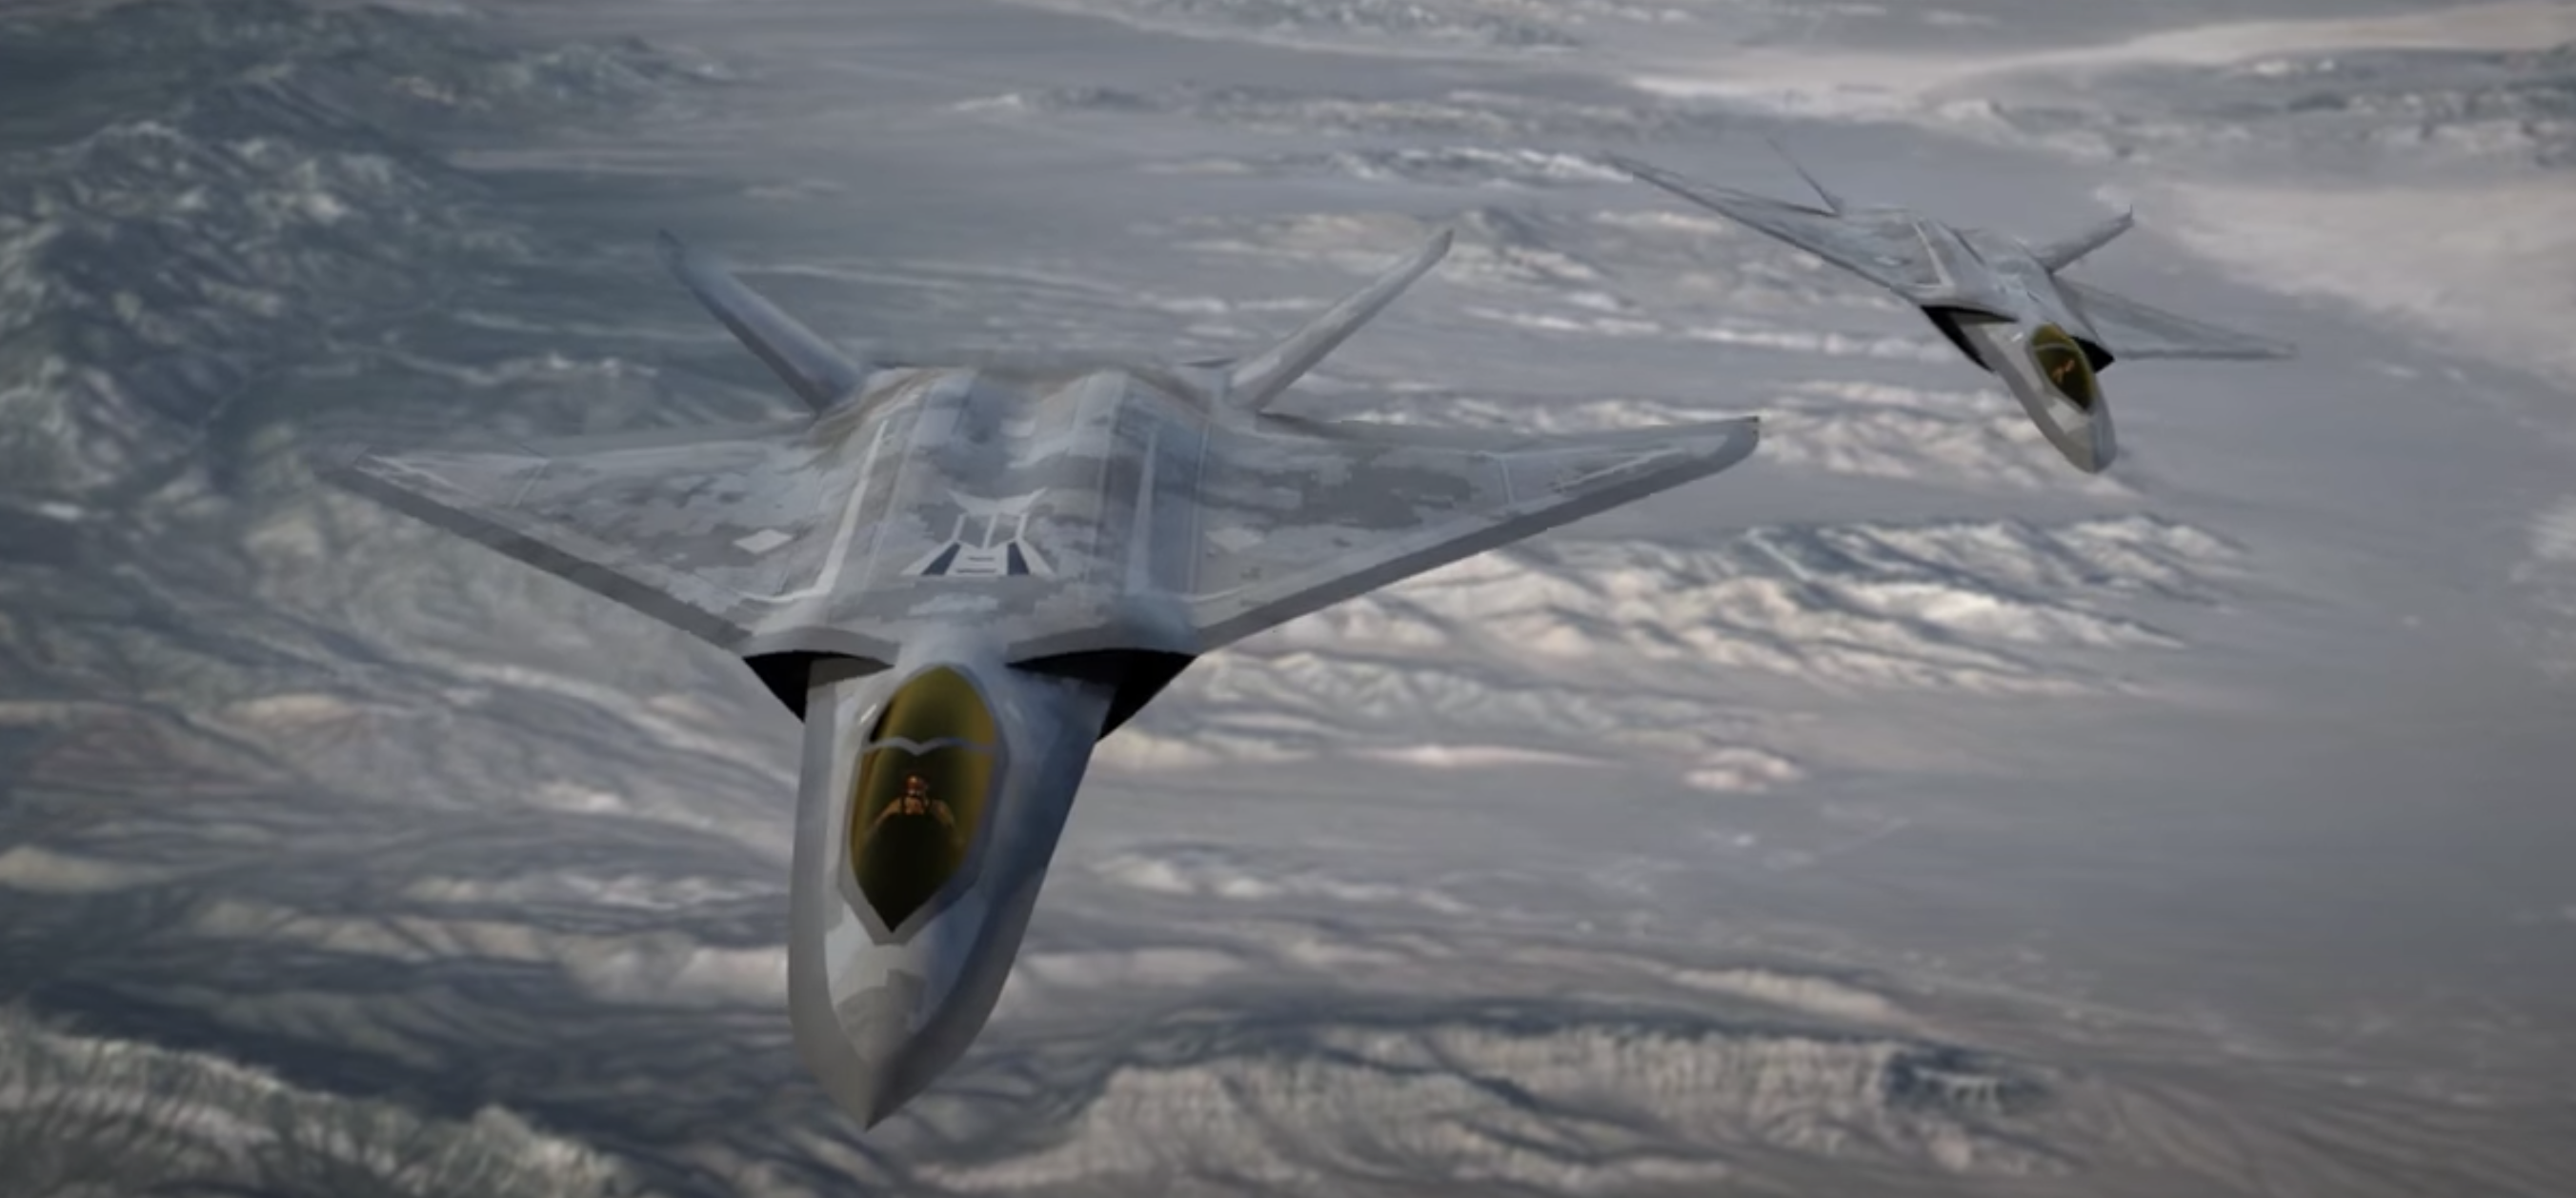 We Could See the Air Force's Secret New Fighter Jet Very Soon